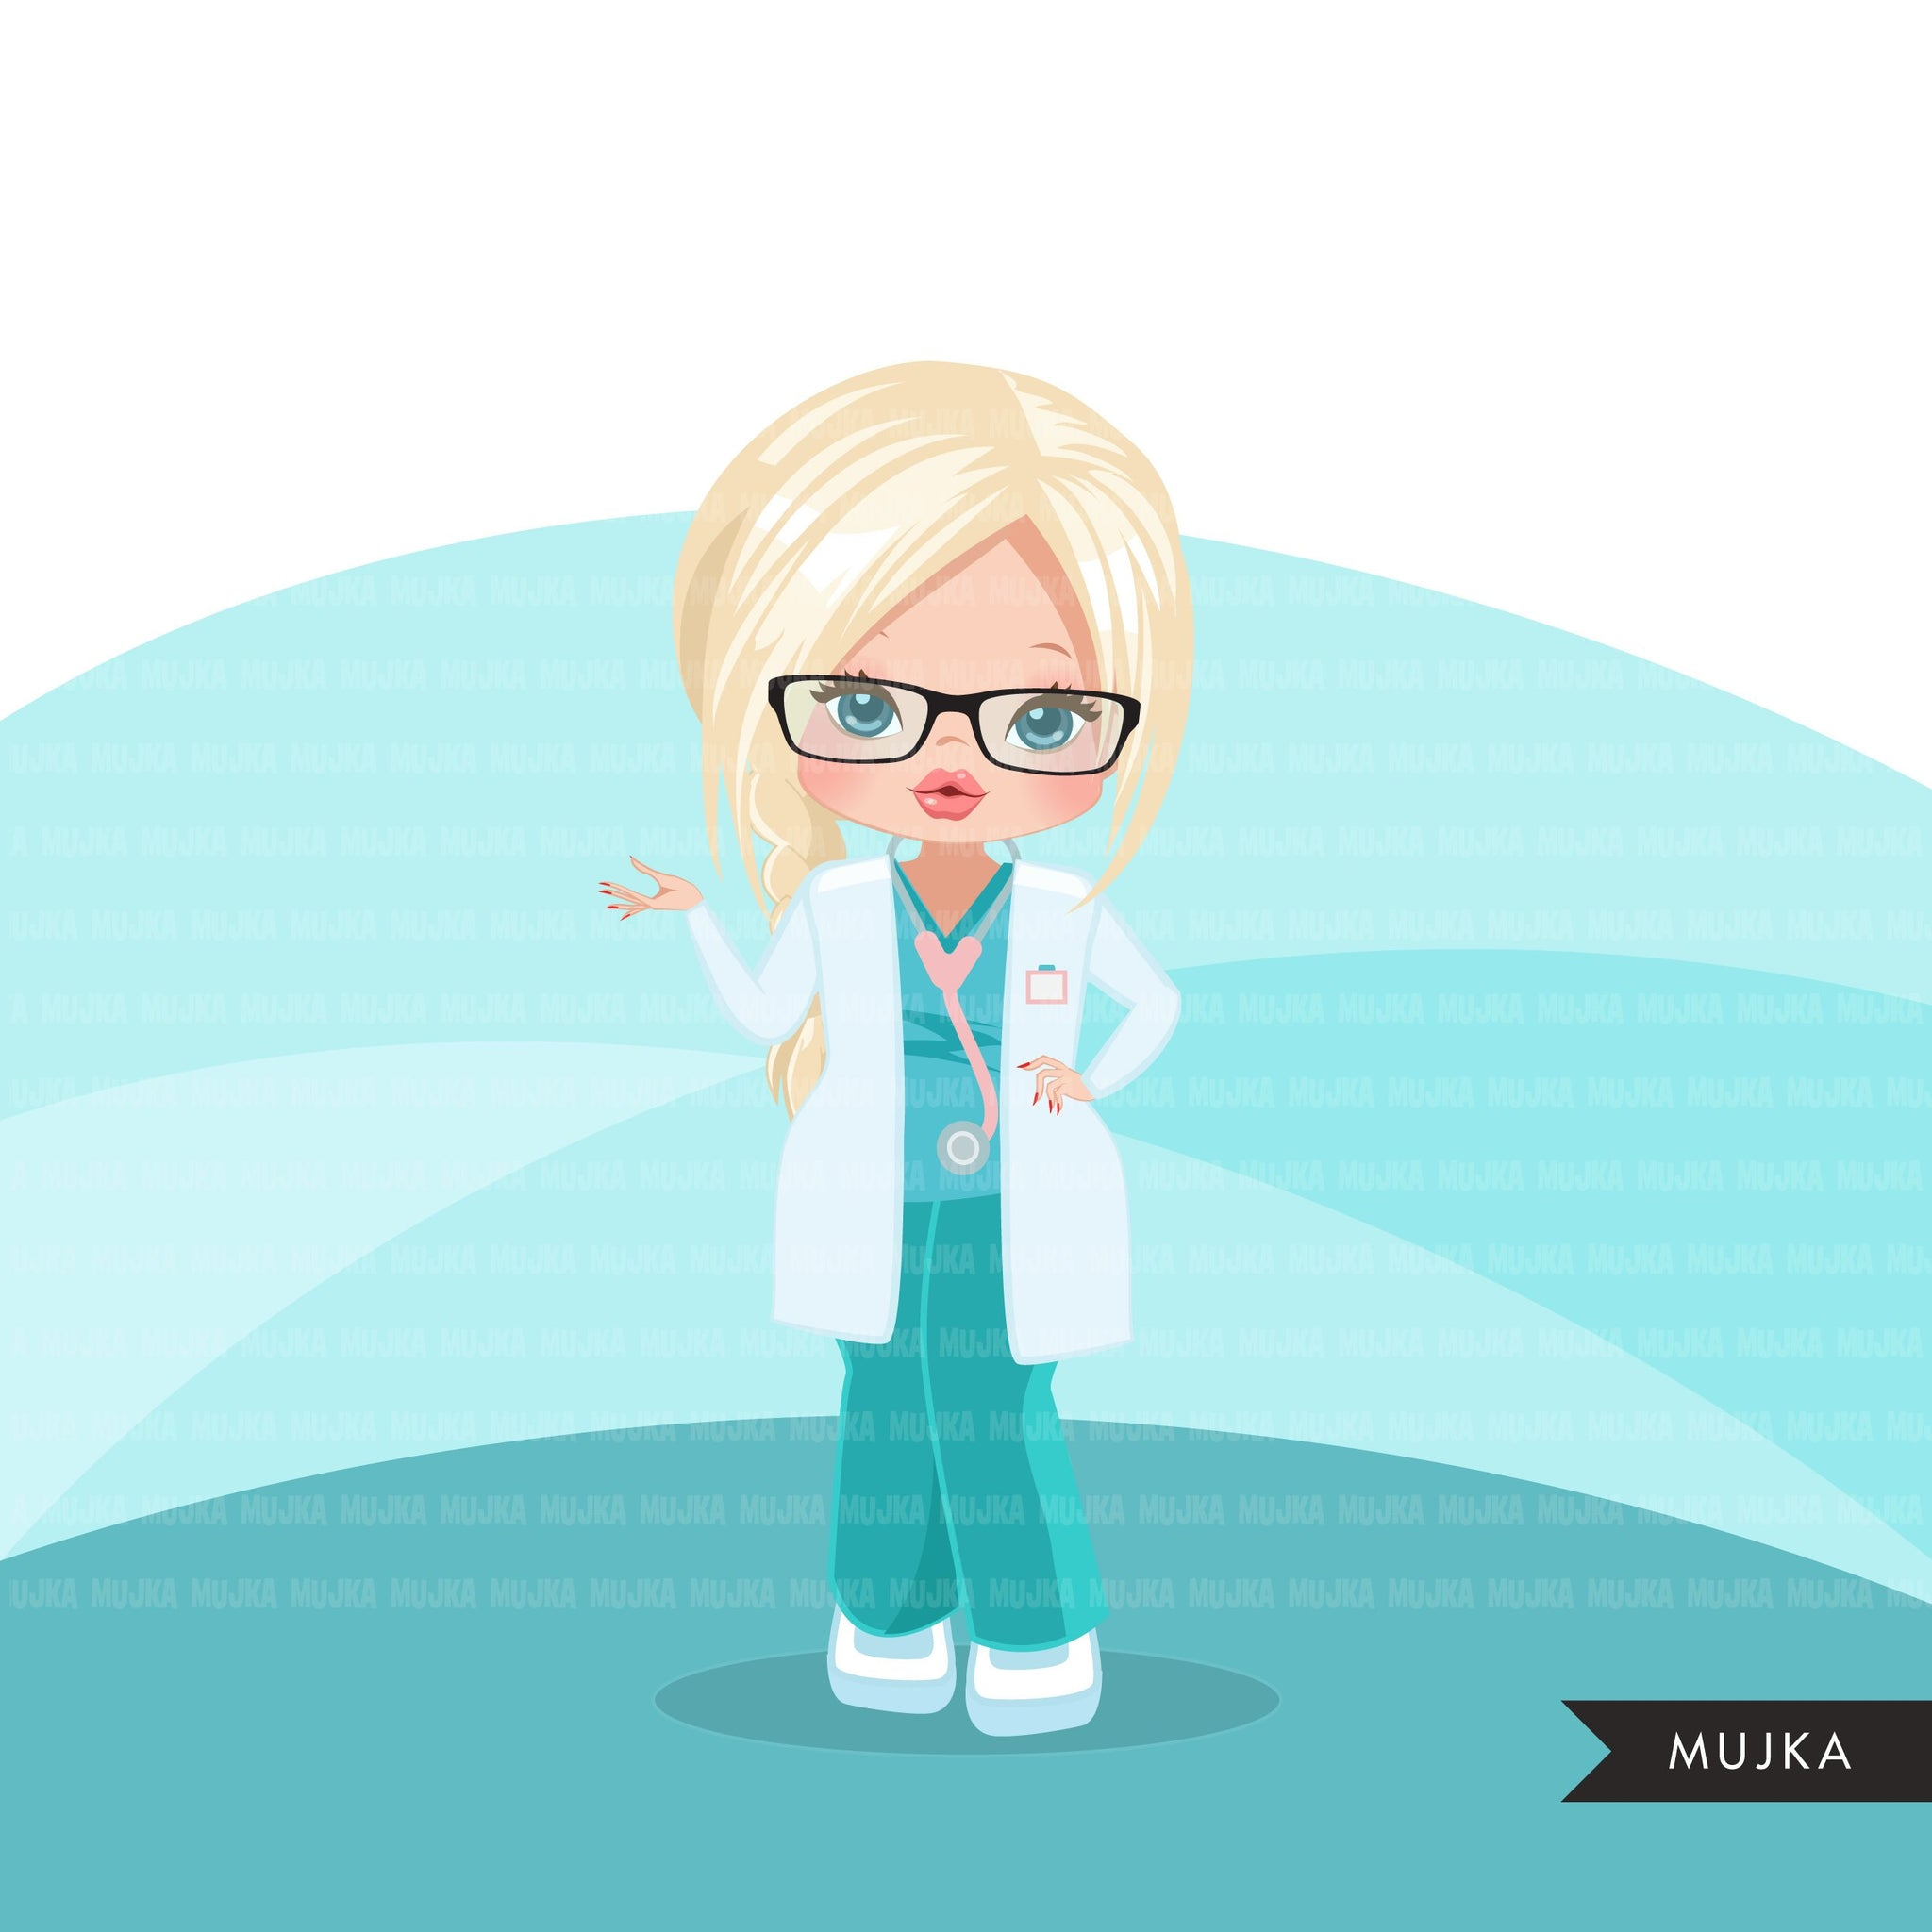 Doctor clipart with scrubs , patient chart graphics, print and cut PNG T-Shirt Designs, Medical clip art